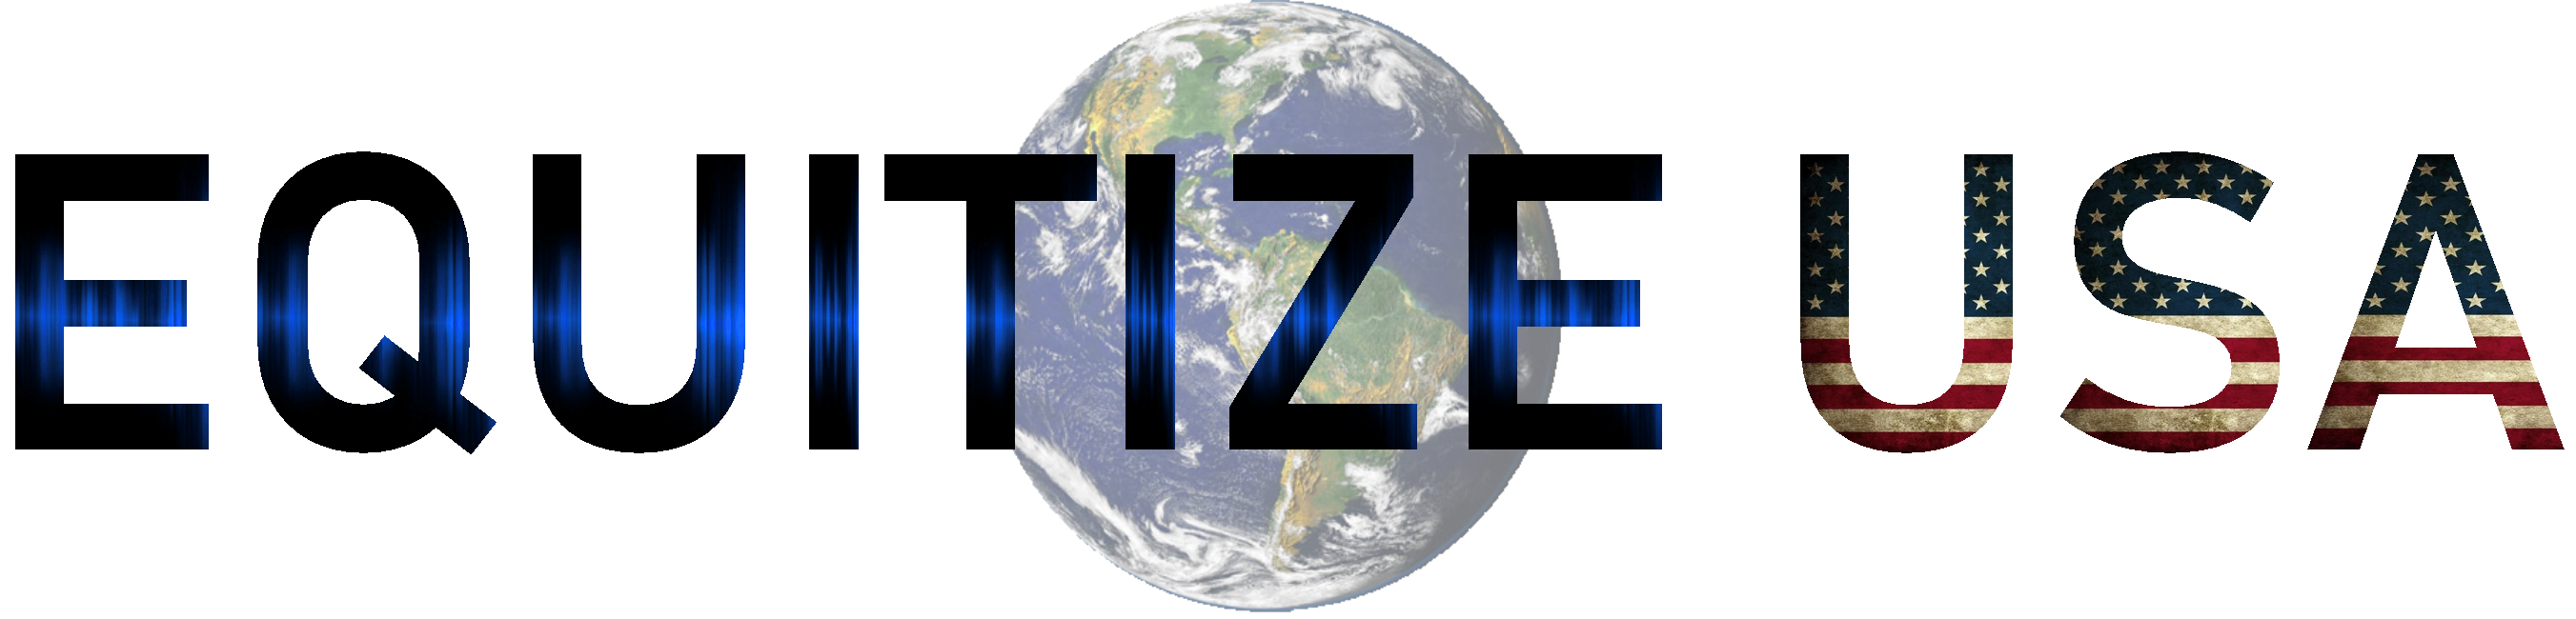 Equitize USA Changes the Game in Equity Crowdfunding